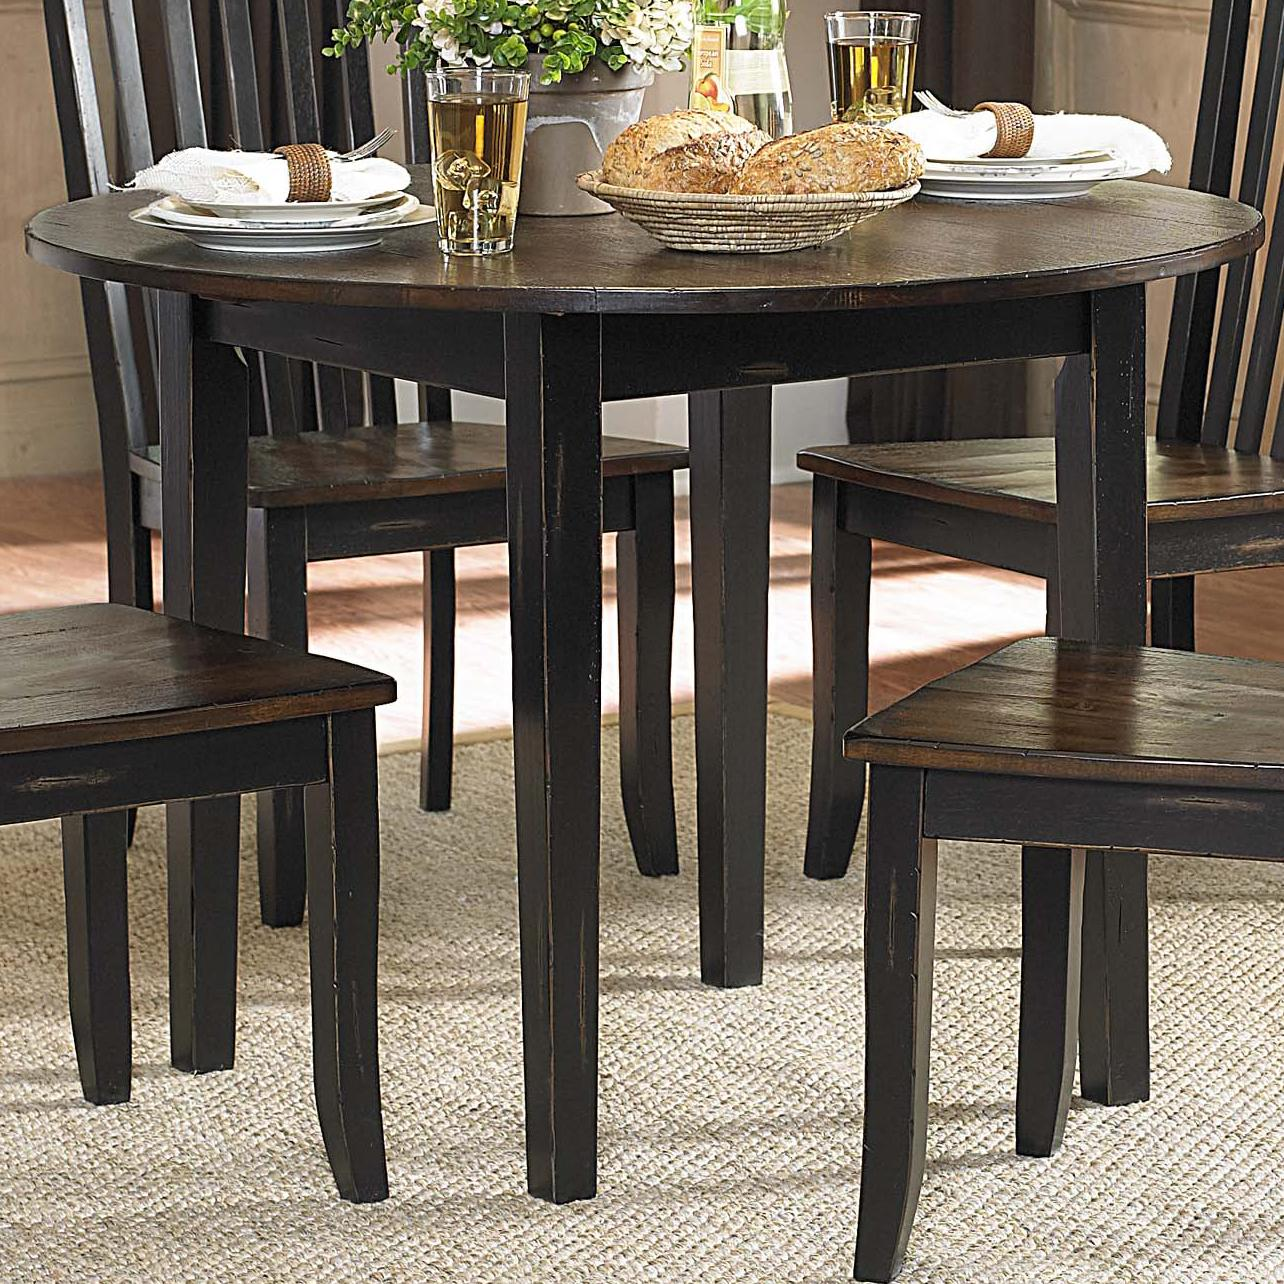 Homelegance Three Falls Dining Table - Item Number: 5023-42